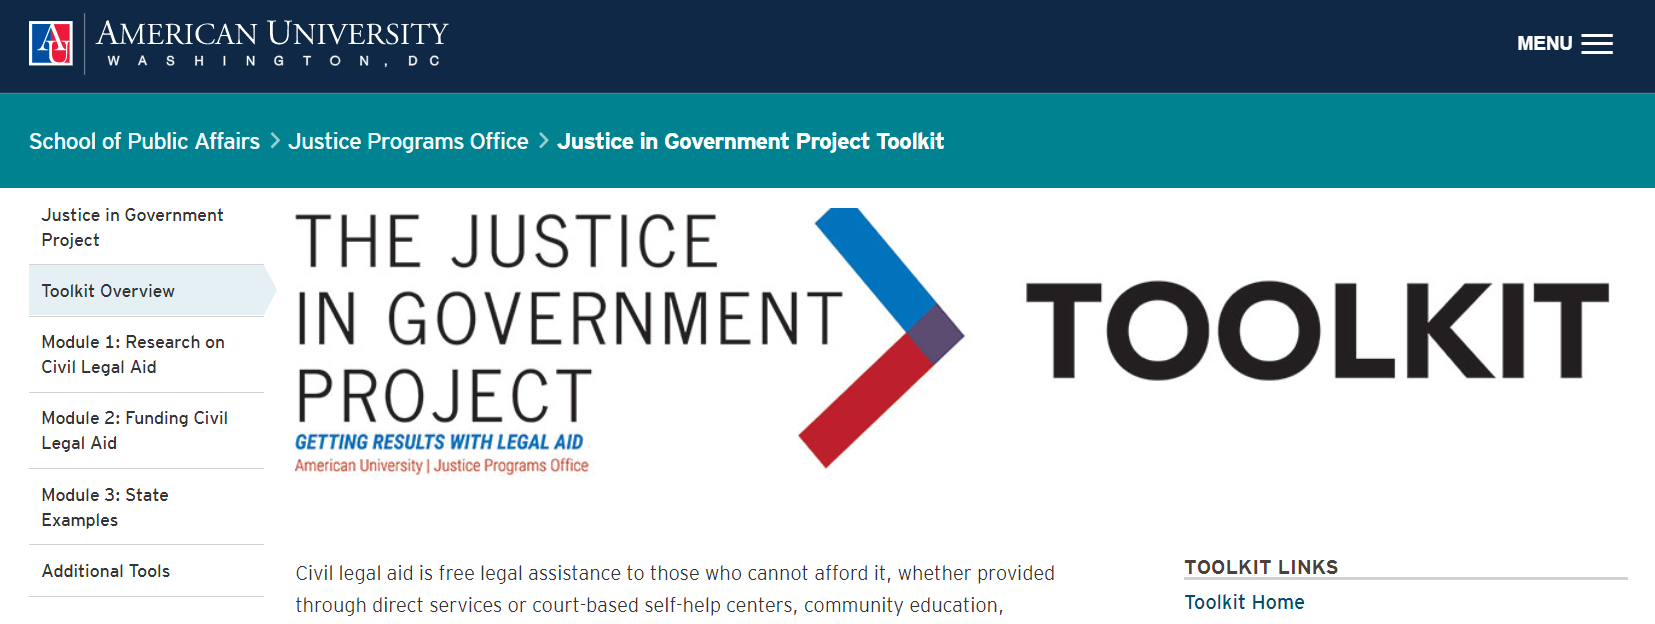 Justice in government project toolkit